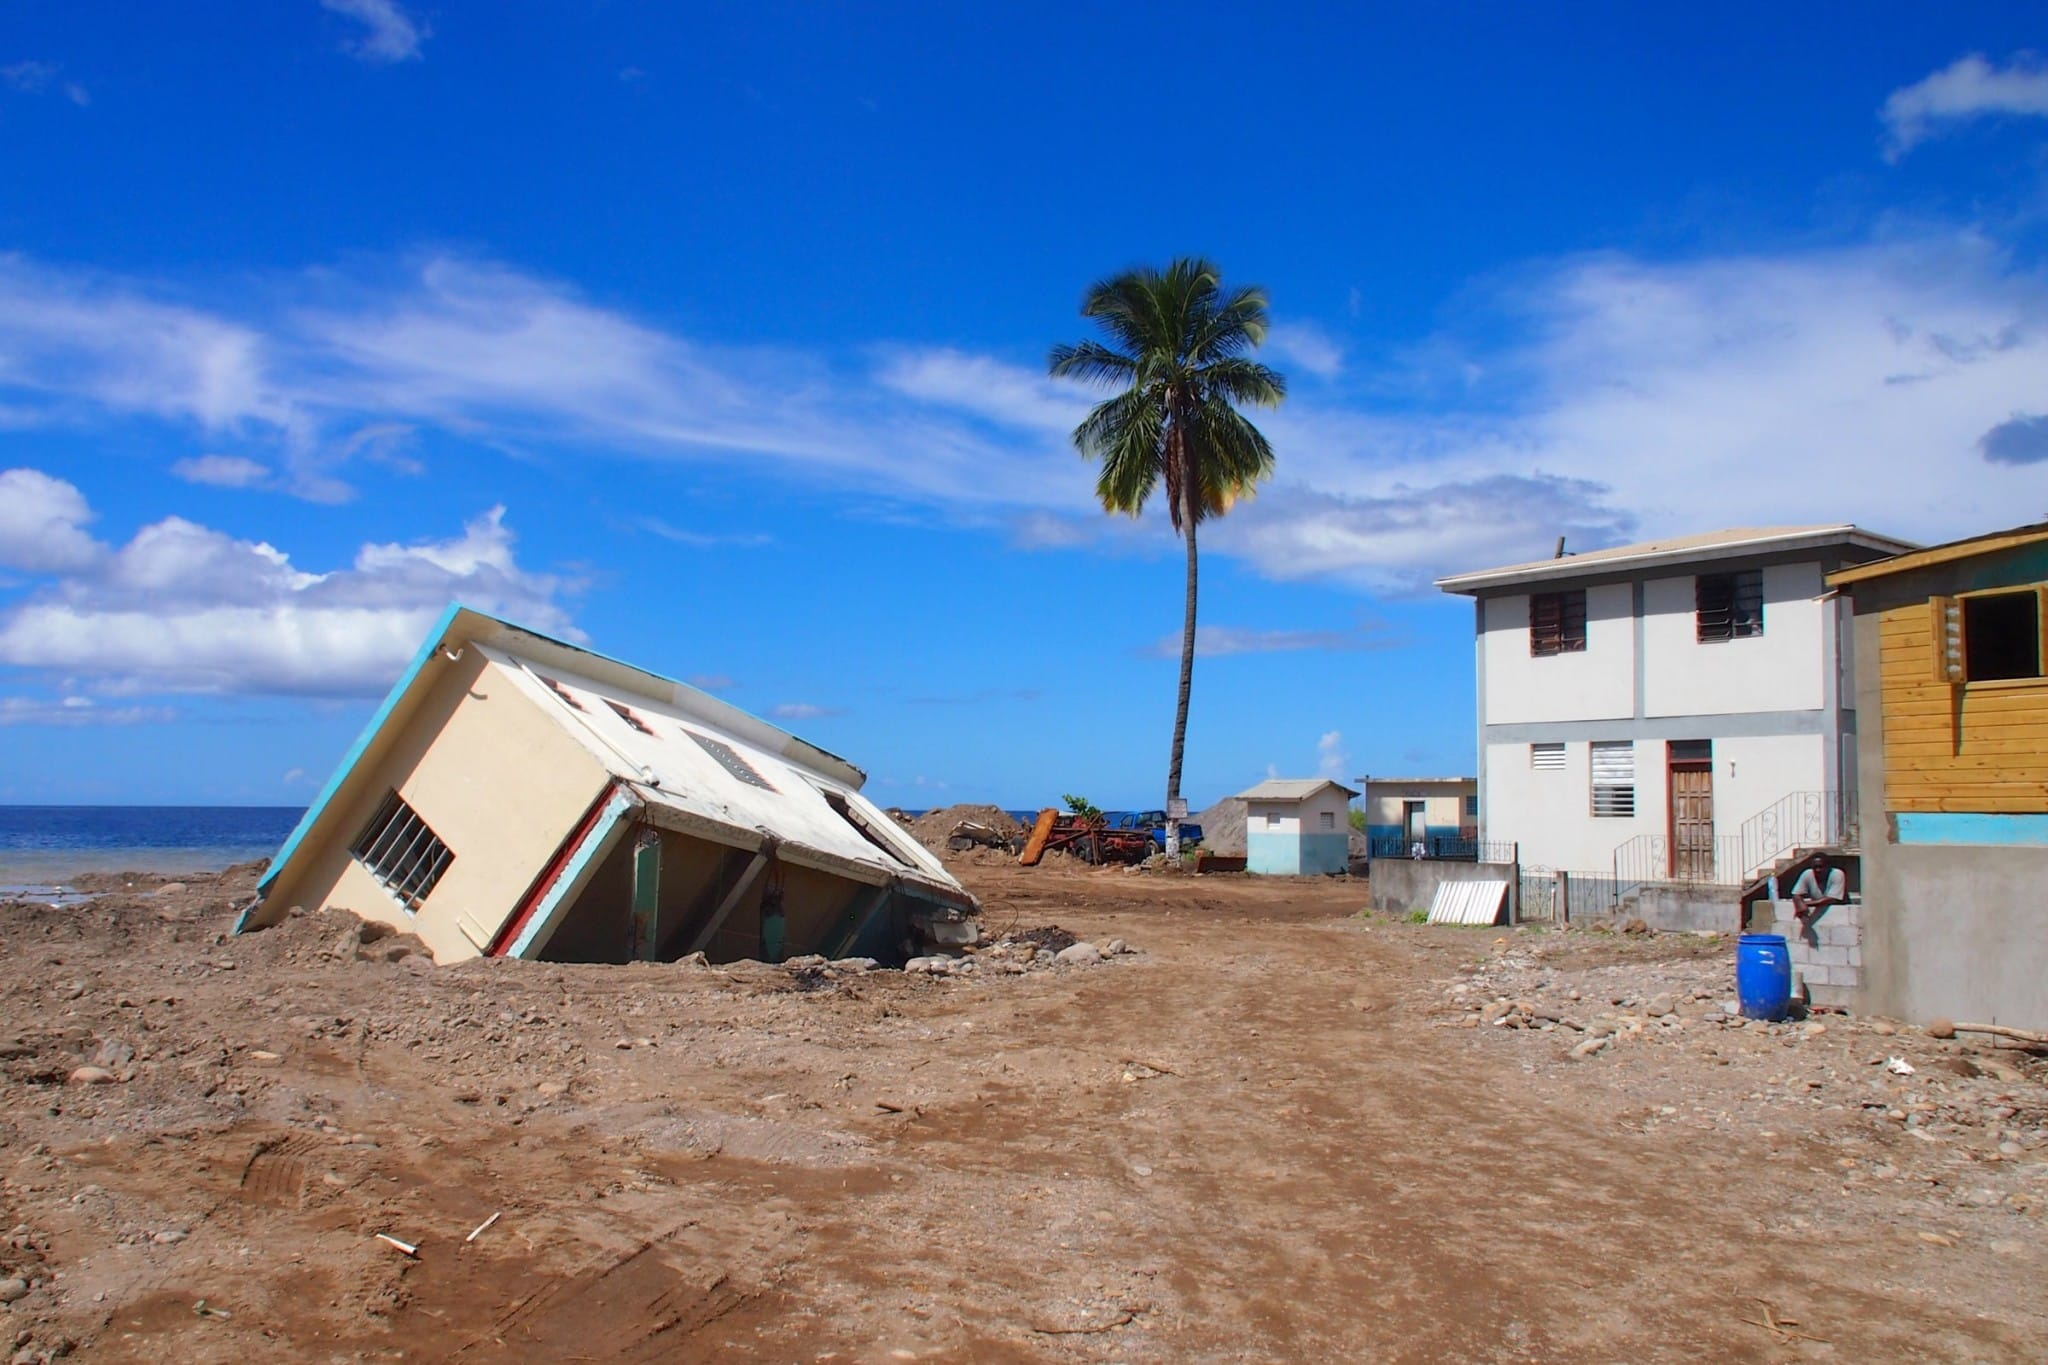 Remnants Of T.S. Erika Along The Road To Recovery